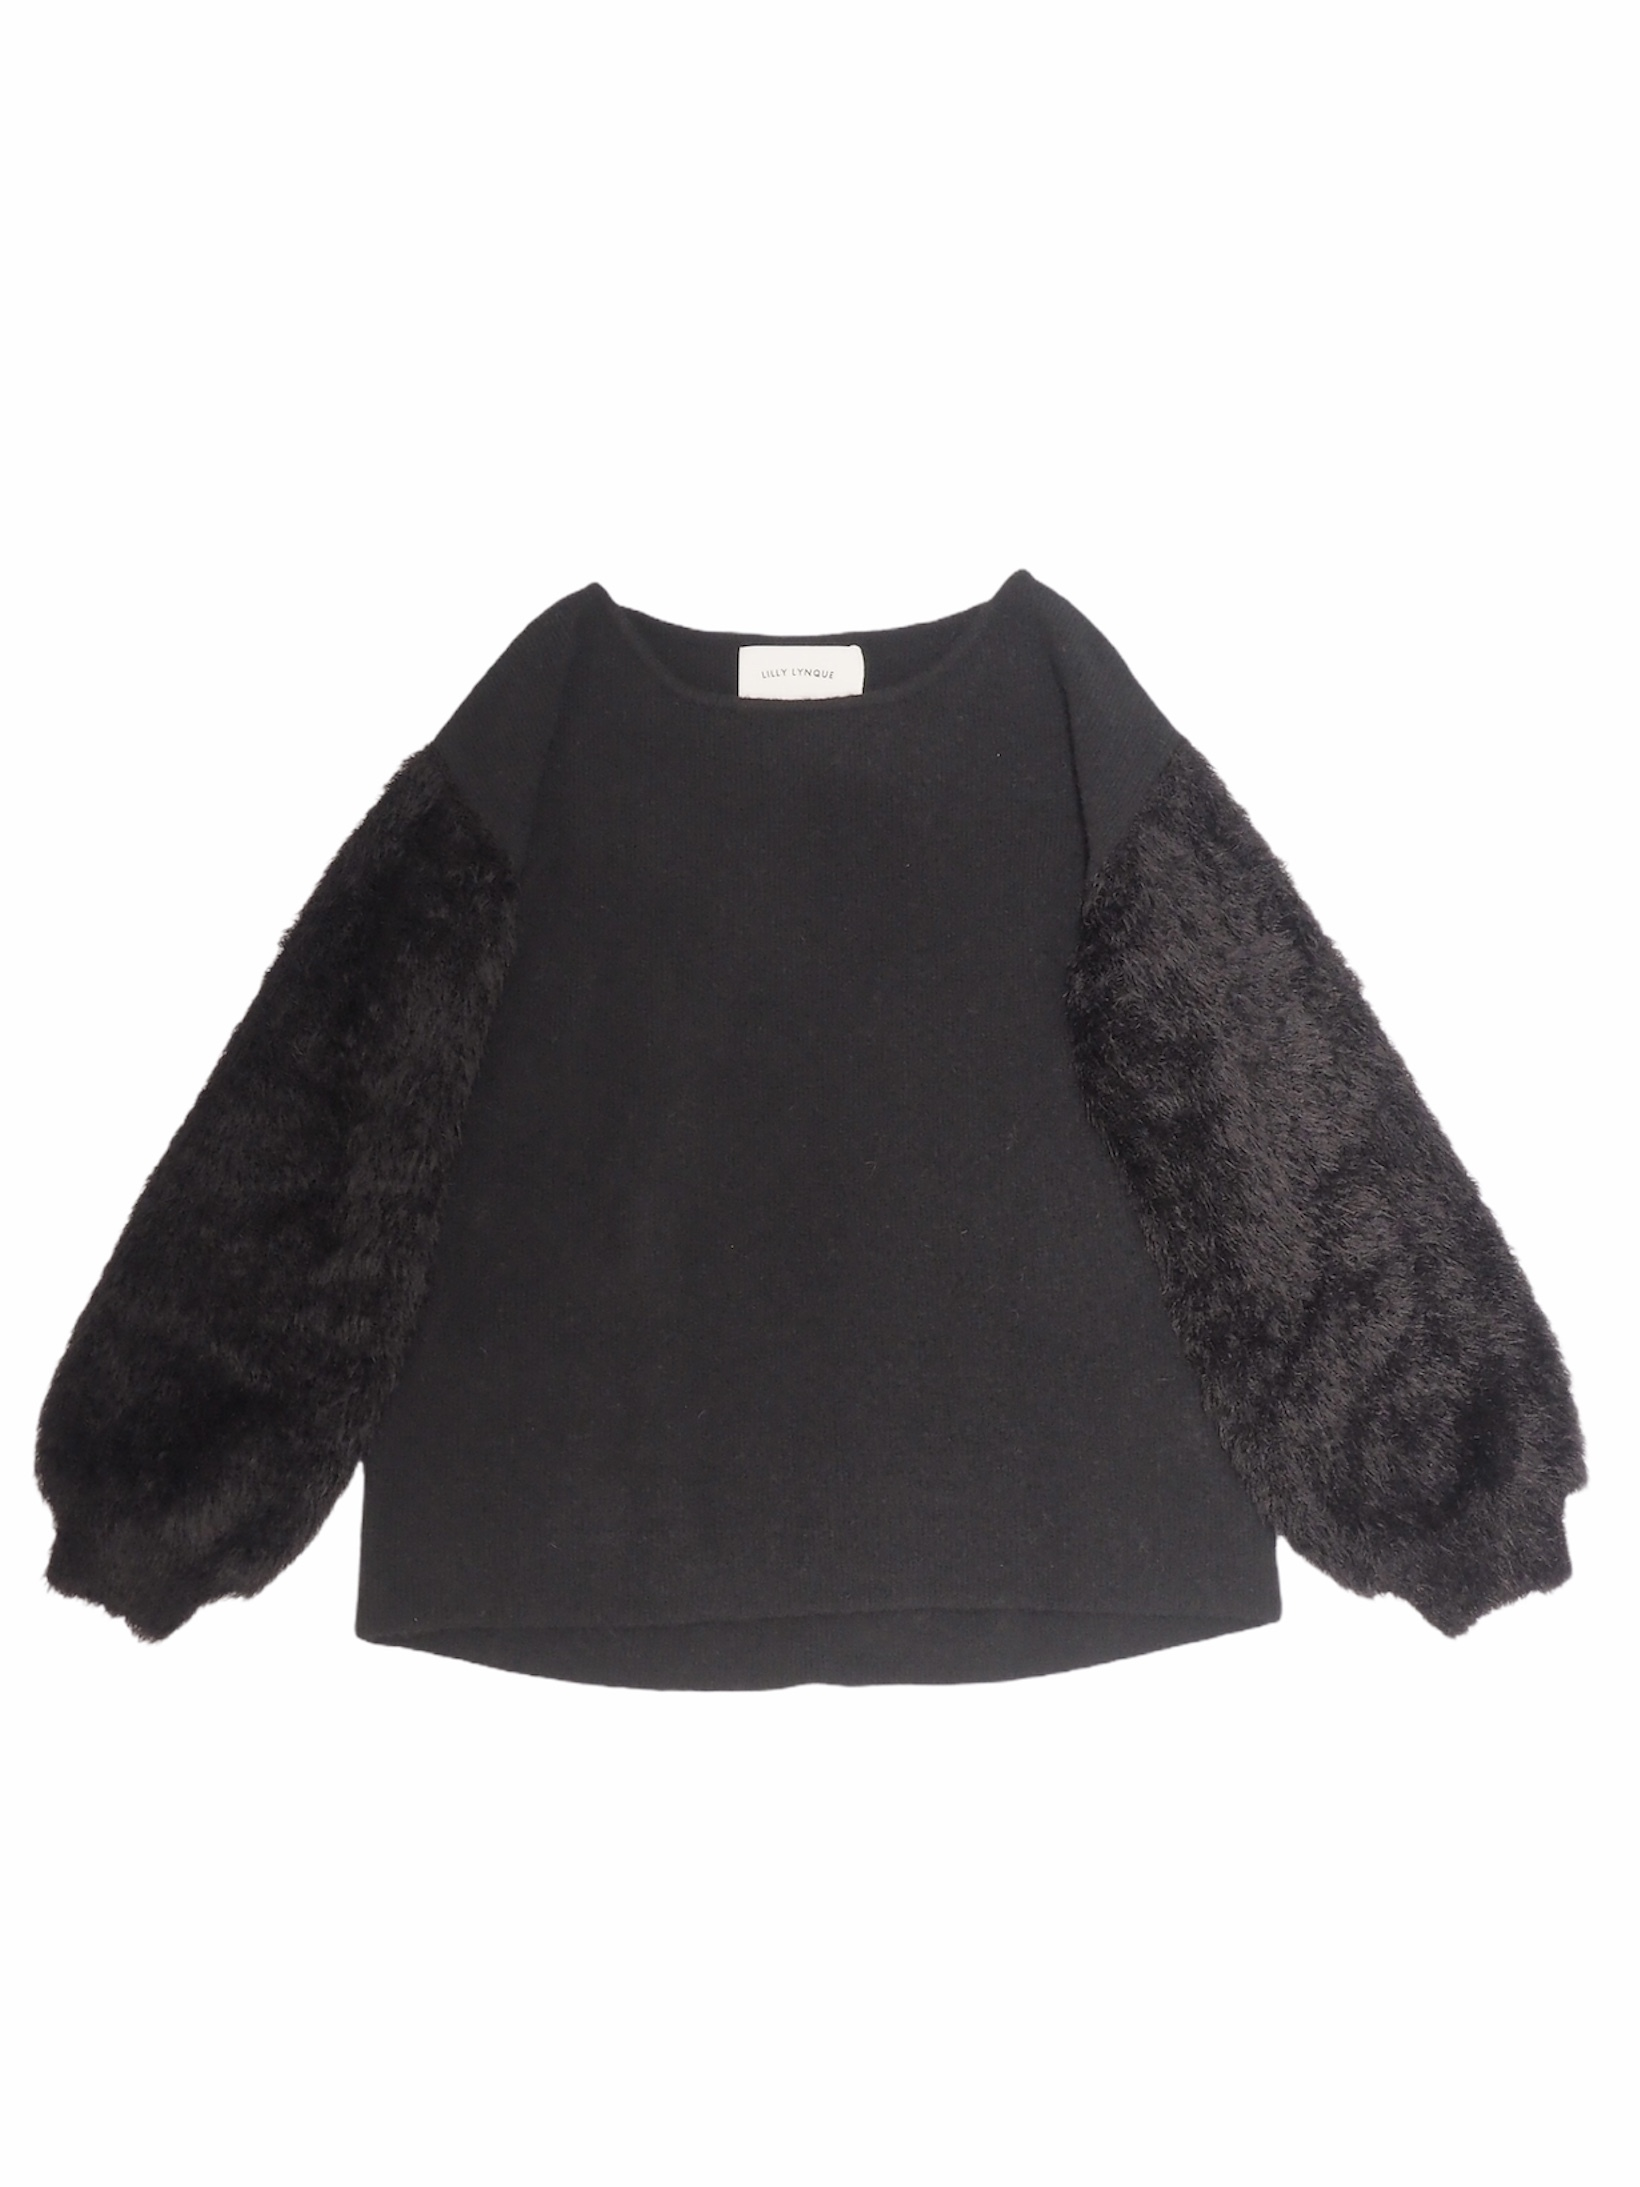 【LILLY LYNQUE】SLEEVE FUR KNIT